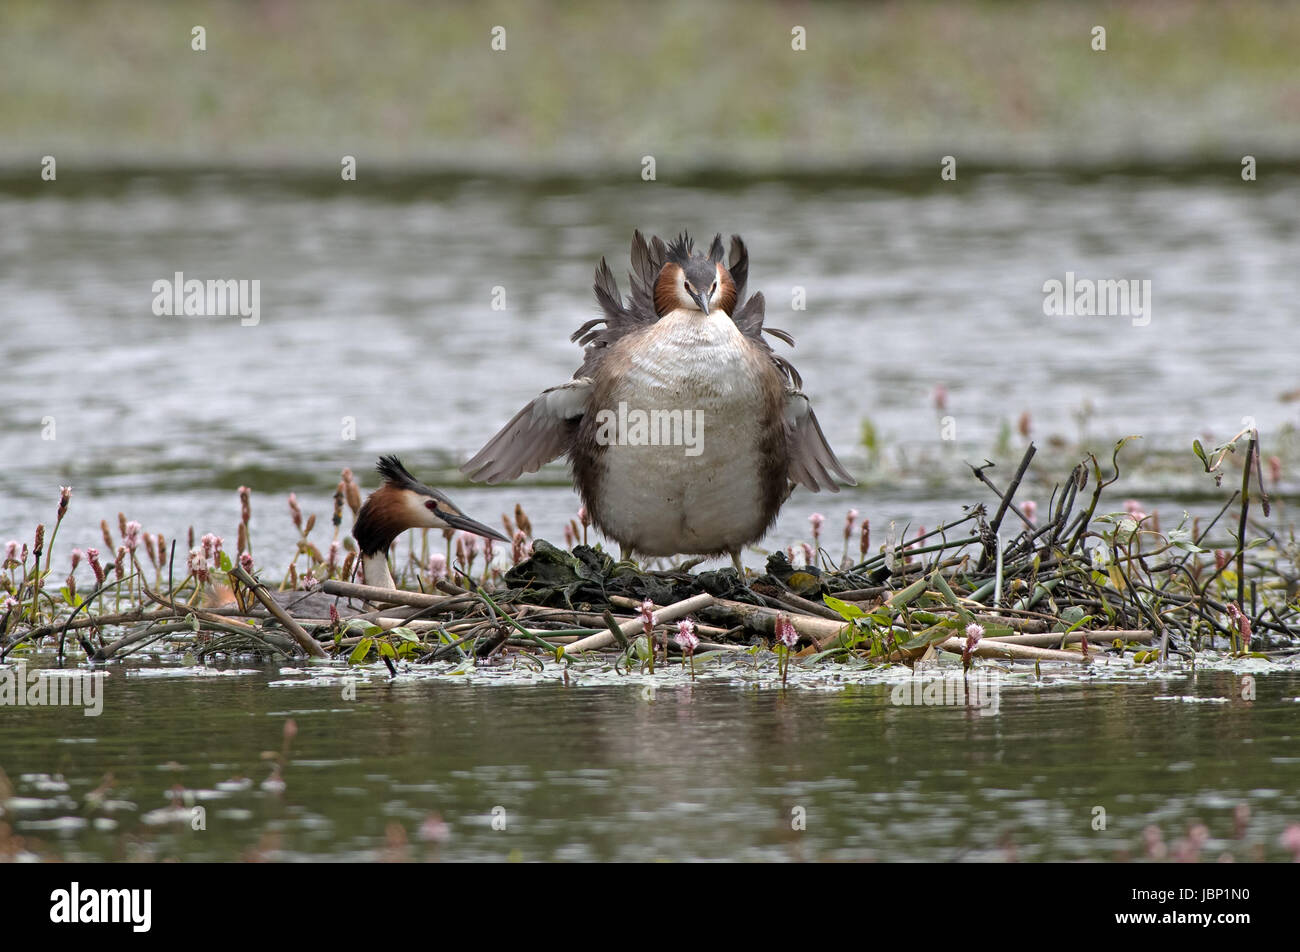 Great Crested Grebes-Podiceps cristatus on nest. Uk - Stock Image